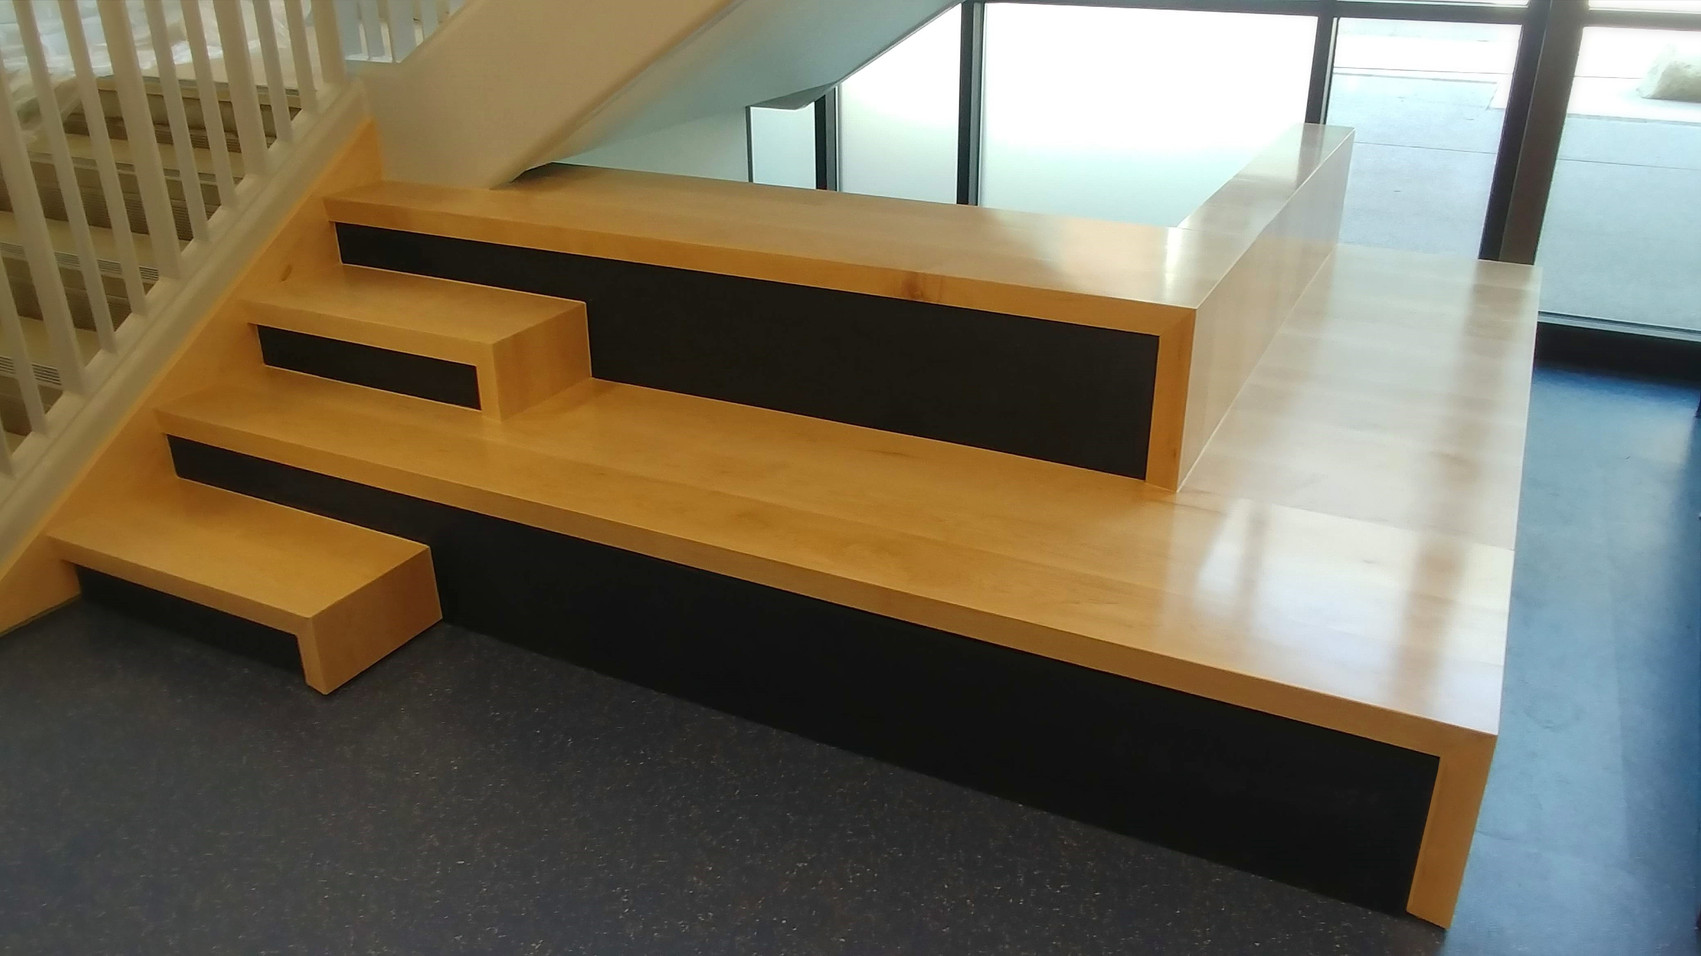 Wood stairs and benches